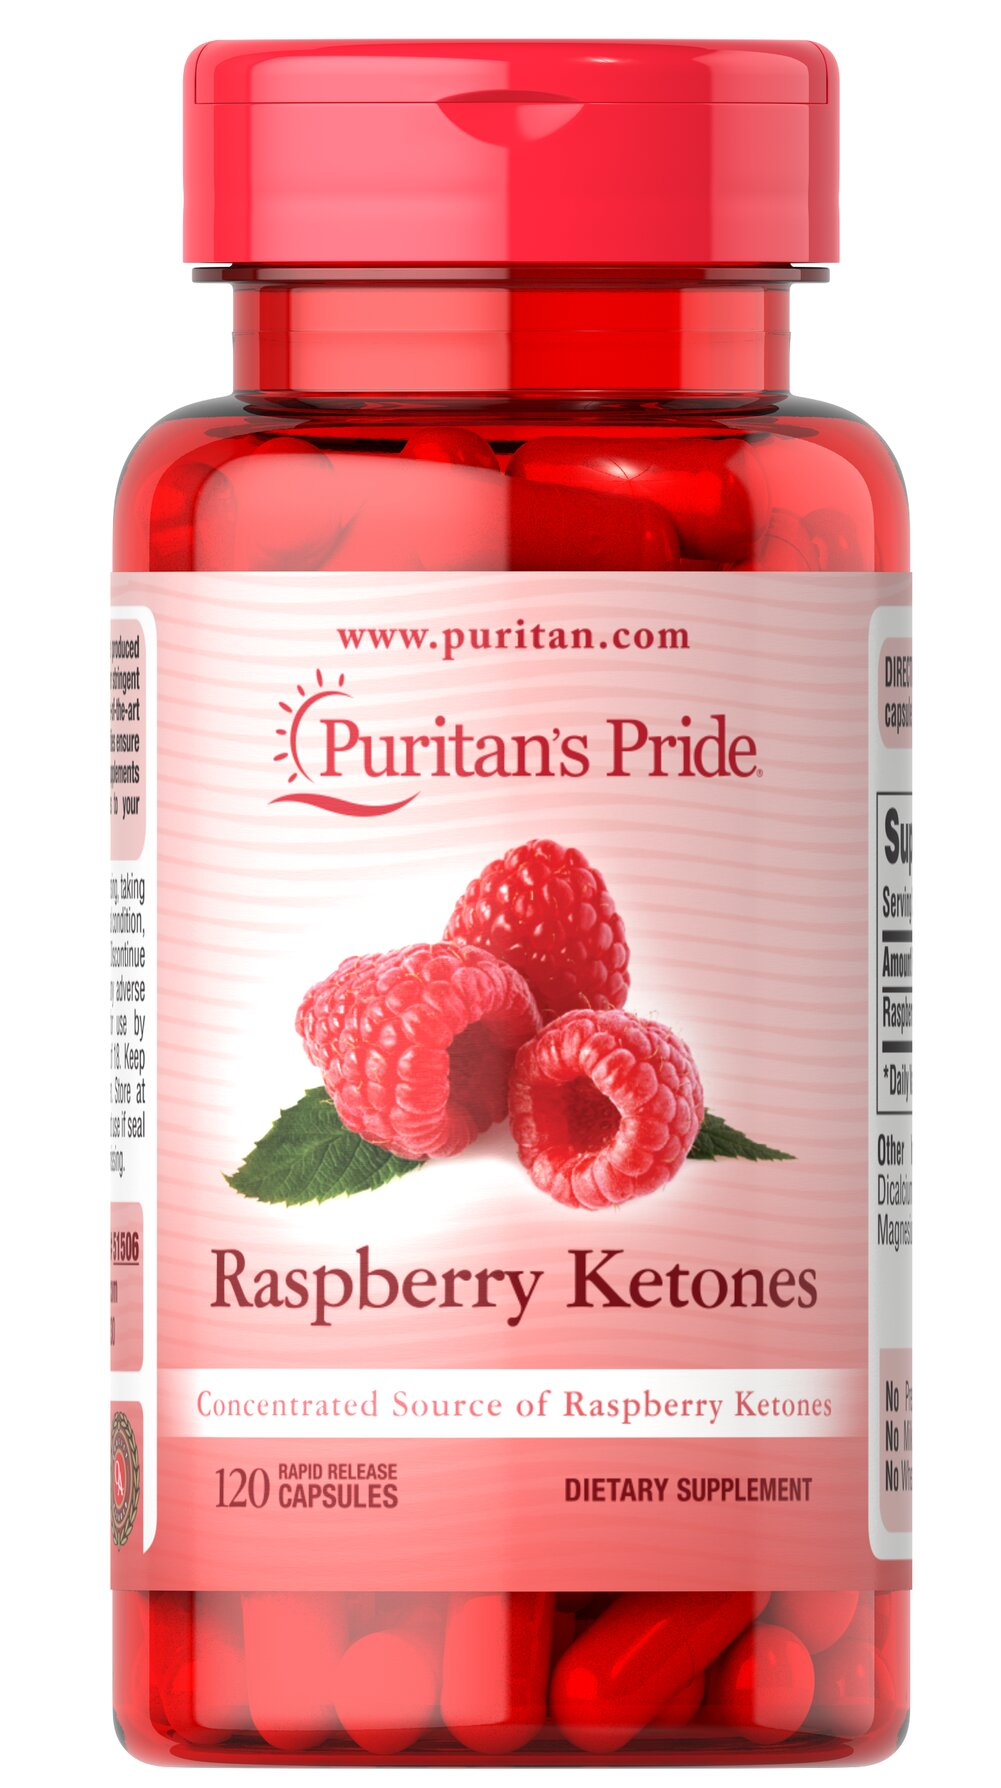 Raspberry Ketones 100 mg <p><span></span></p><br />In the last decade, scientists took note of the fact that raspberry ketone is molecularly similar to capsaicin. Capsaicin is the chemical in chili peppers that gives it heat. As more studies about raspberry ketone are conducted, the scientific community is learning more and more.<br />Our Raspberry Ketones are highly concentrated. Each serving of this dietary supplement contains 100mg of raspberry ketones. Rap